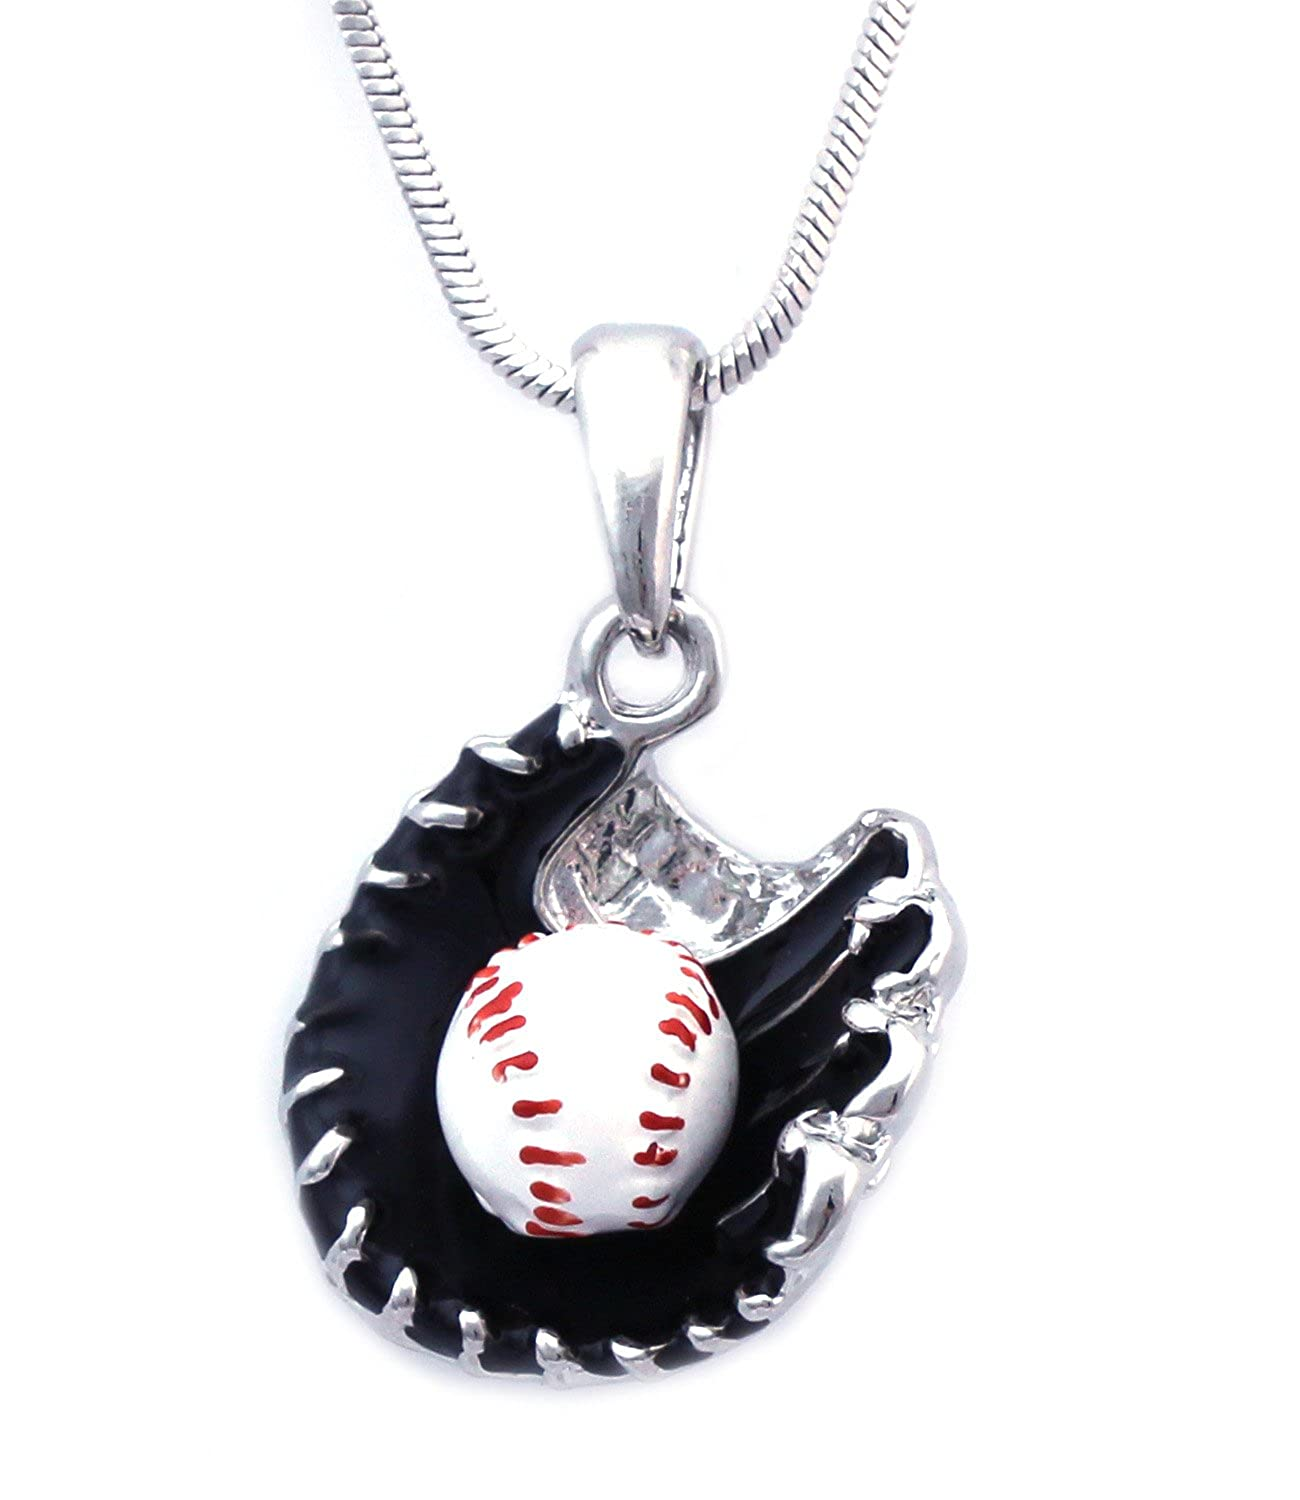 chain for magnetic mens dp baseball necklace silicone men inch amazon women rubber cord com sports black jewelry